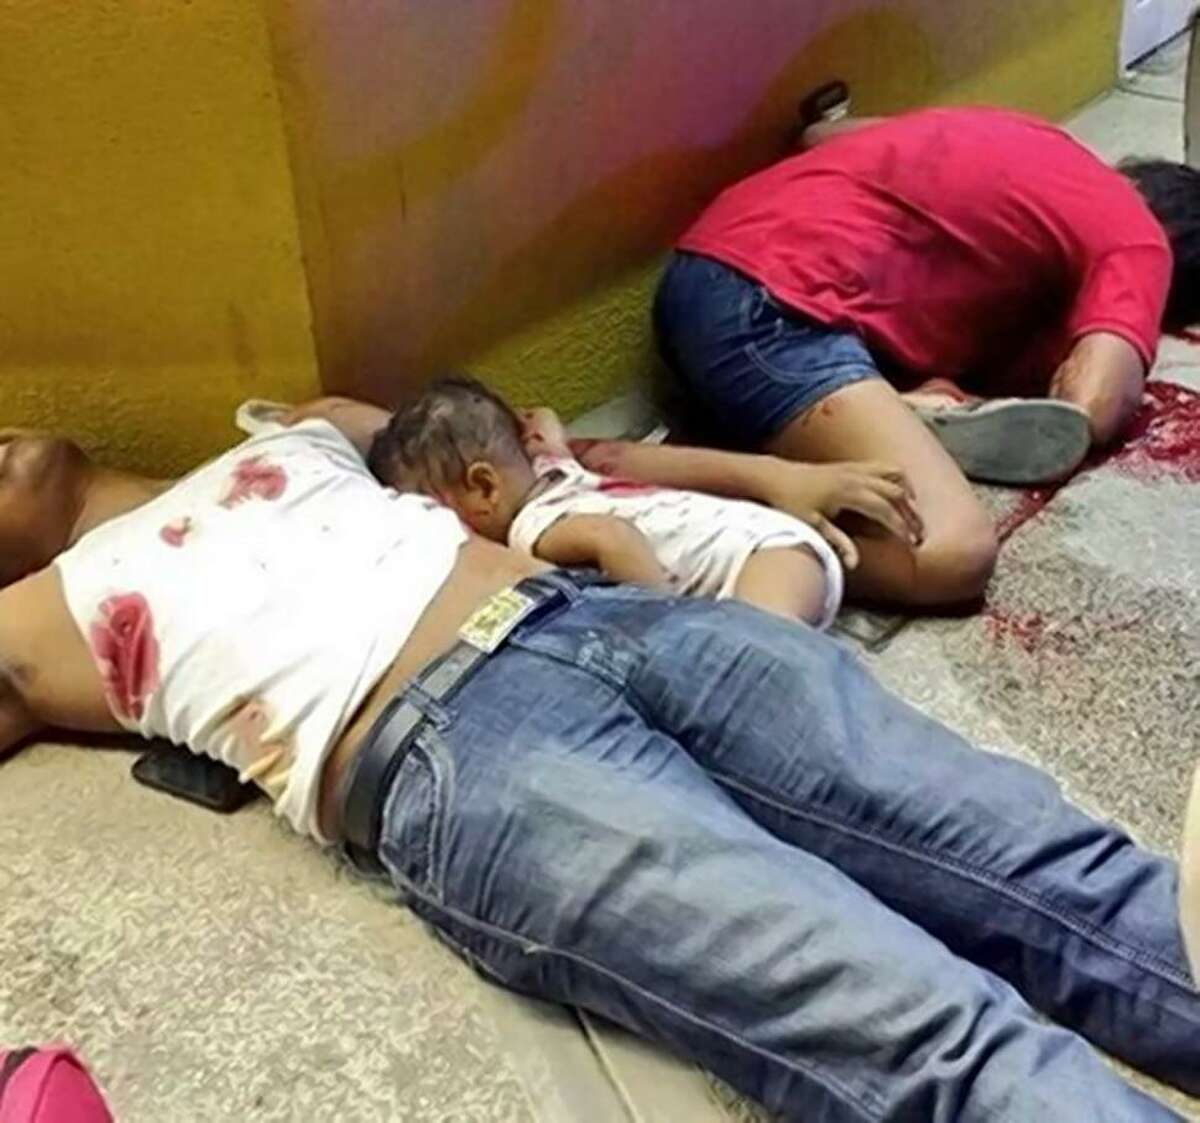 Marcos Miguel Pano Colón was in the arms of his 24-year-old father Juan Alberto Pano Ramos when they were shot and killed on Friday outside of a convenience store in Pinotepa Nacional in Oaxaca state. The photo has sparked a wave of anger over the country's gang violence.